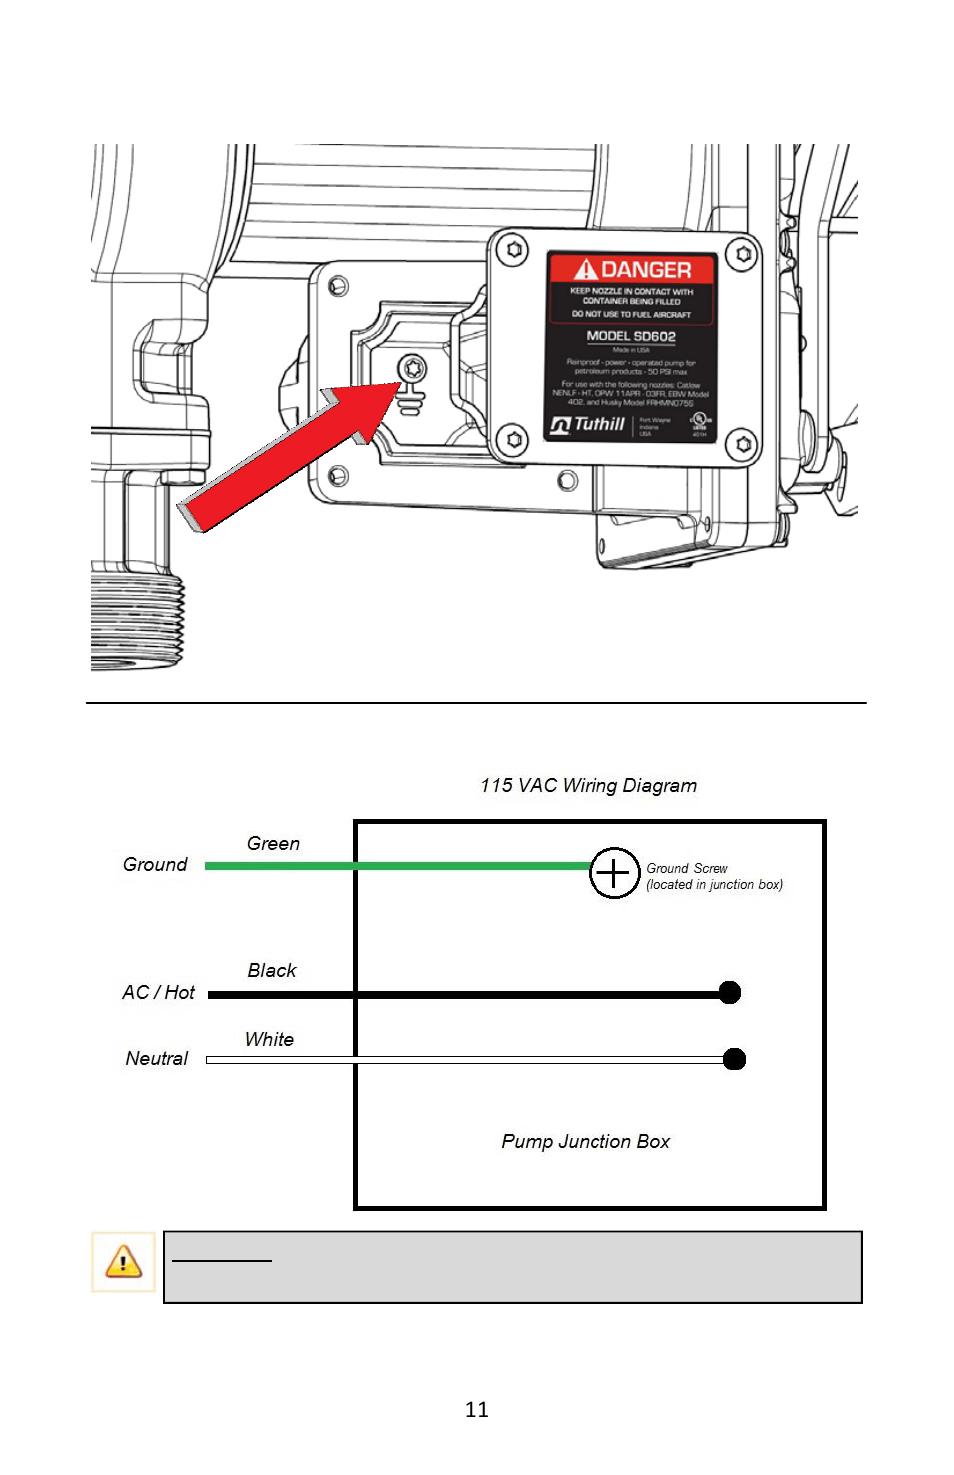 split ac wiring diagram image how many triangles are there in this pump junction box fill rite fr600g series acac